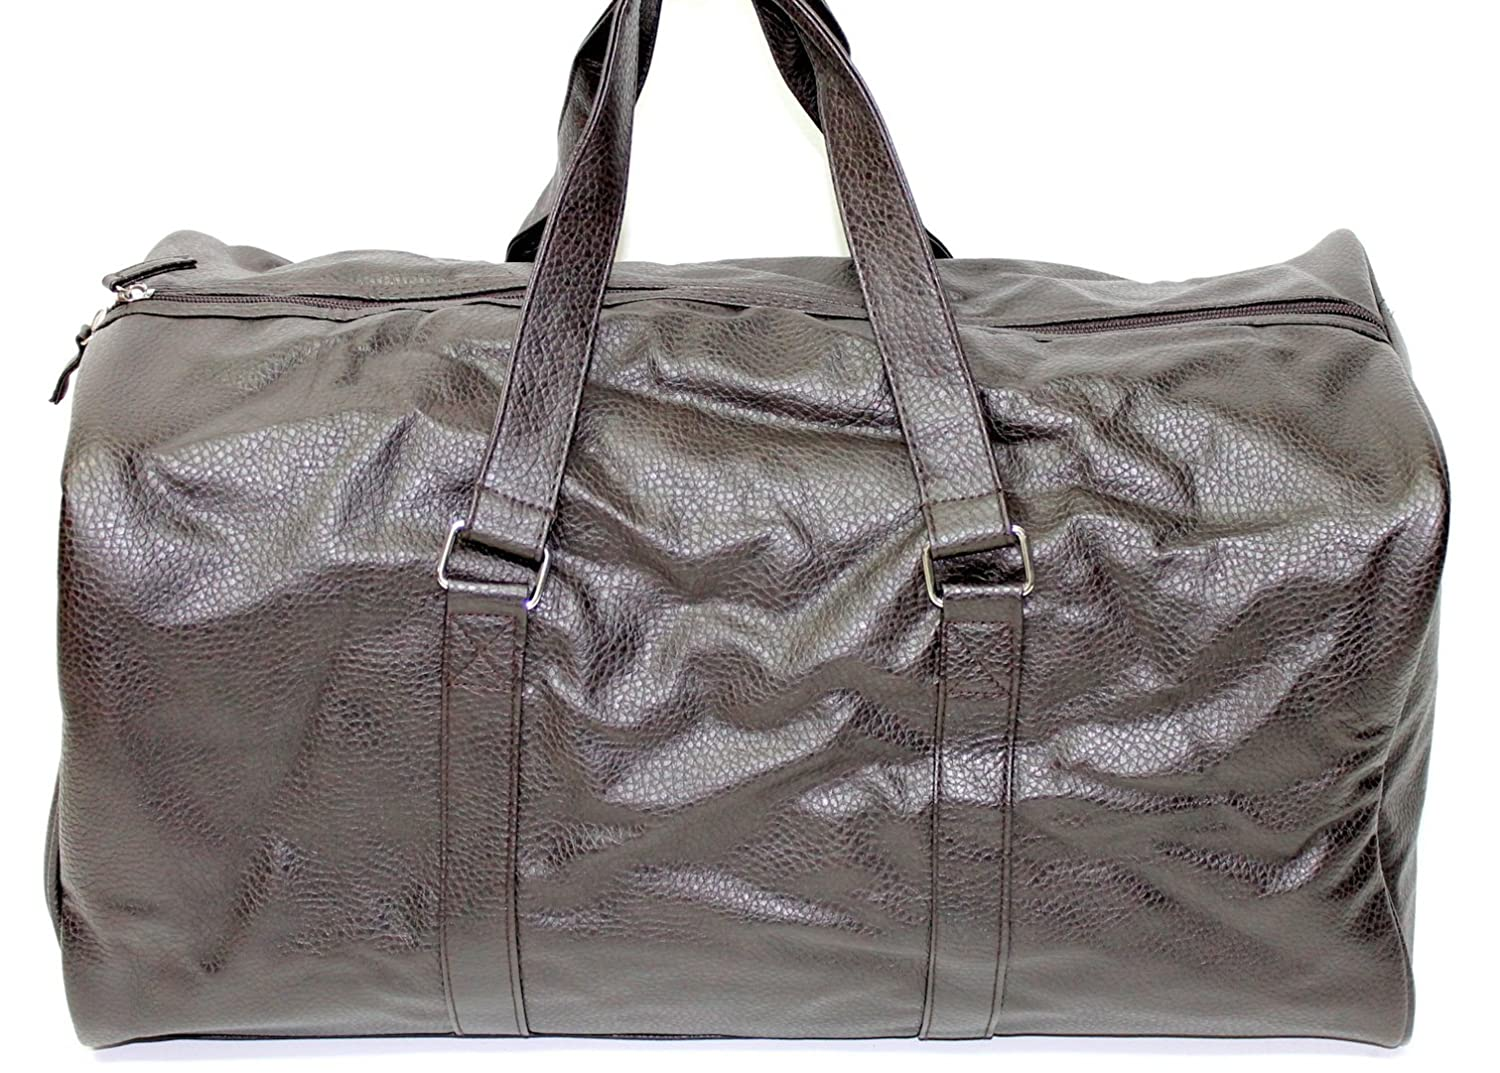 1d0c854ea7 DOLCE   GABBANA THE ONE BROWN TRAVEL BAG DUFFLE WEEKEND GYM BAG   Amazon.co.uk  Beauty